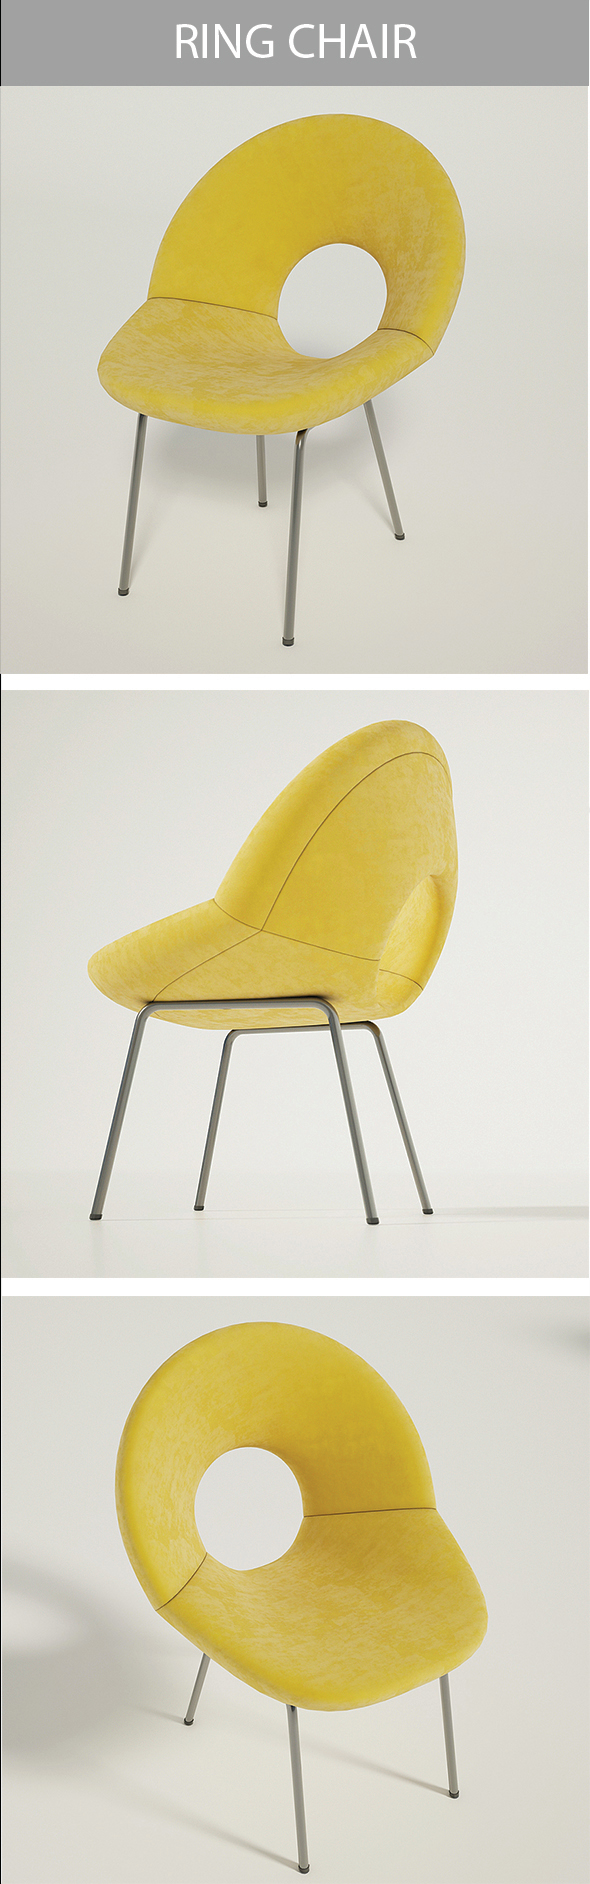 Ring Chair - 3DOcean Item for Sale